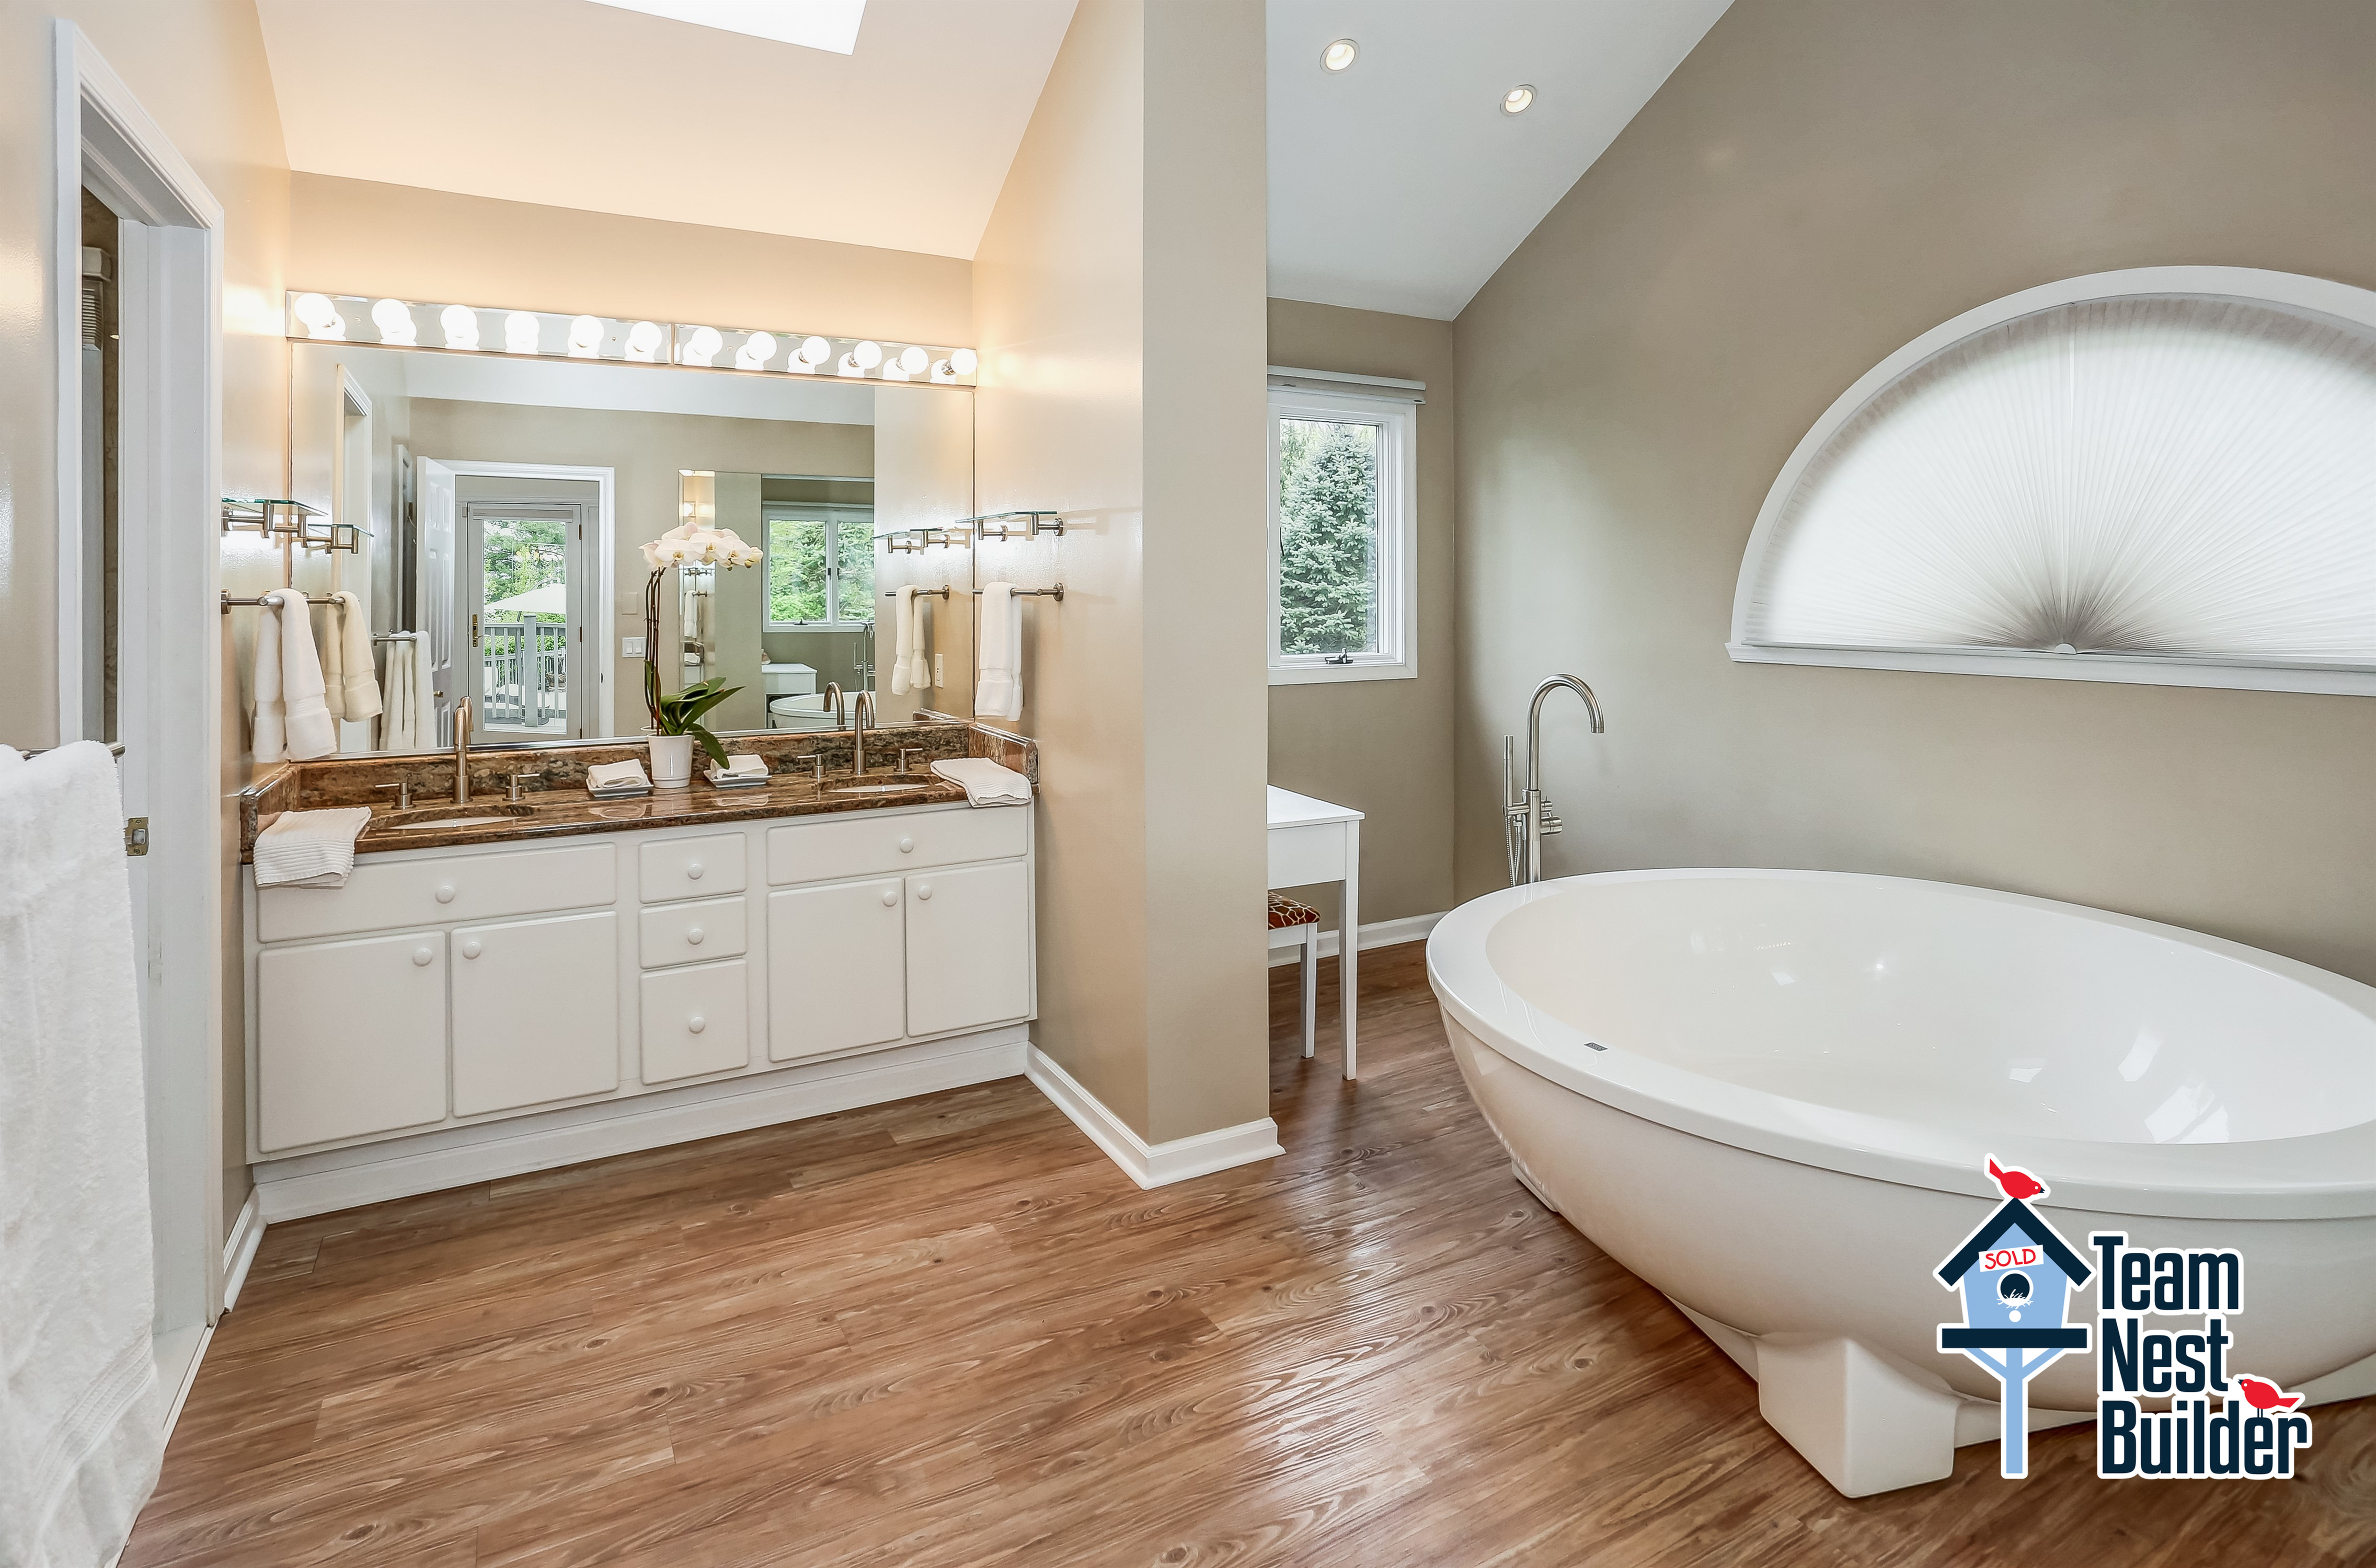 Fabulous newly-remodeled master bathroom